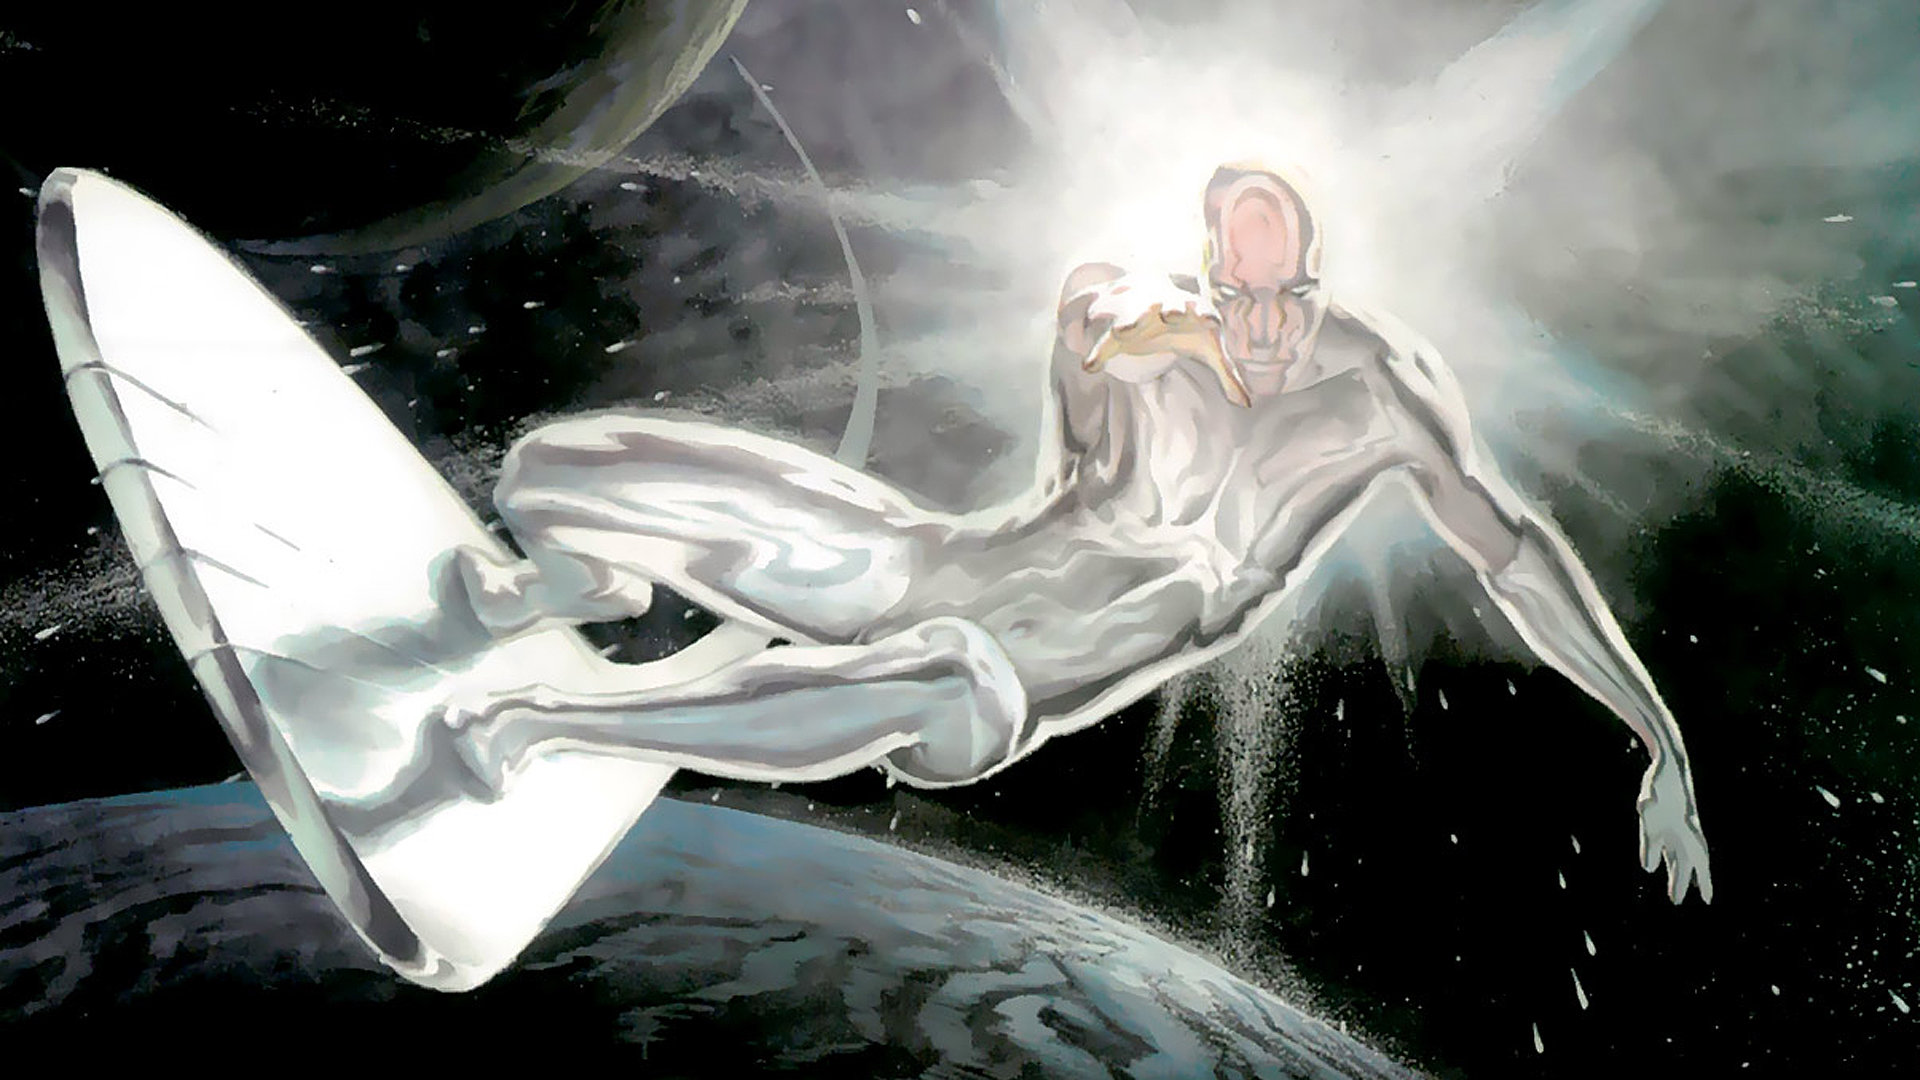 Free Download Silver Surfer Wallpaper Id 165171 Full Hd 1080p For